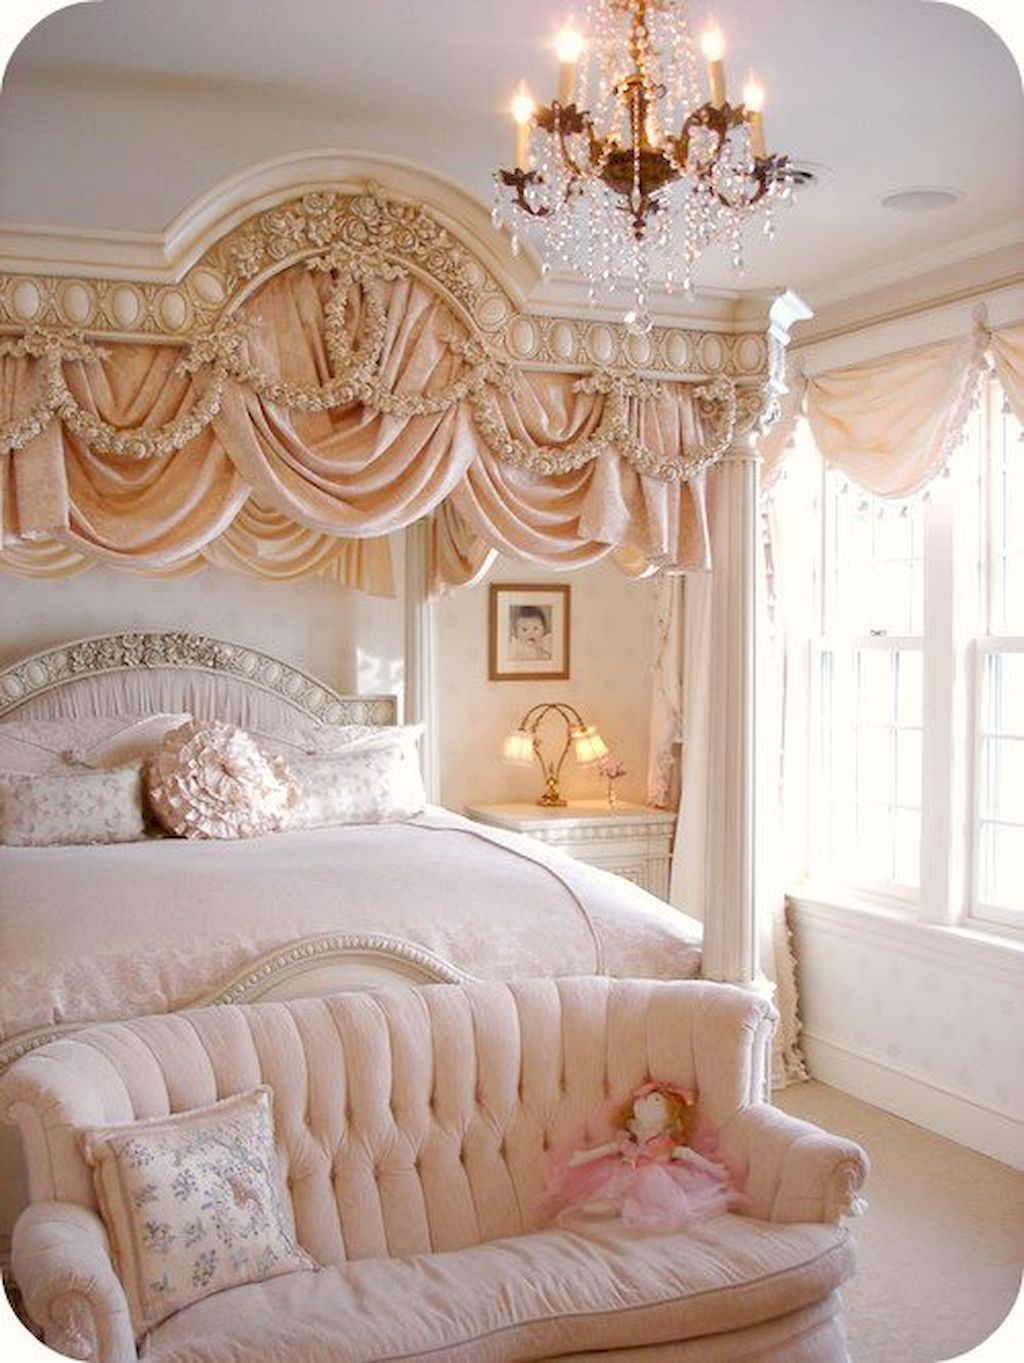 Romantic Shabby Chic Bedroom Decor And Furniture Inspirations 41 - Schlafzimmer Shabby